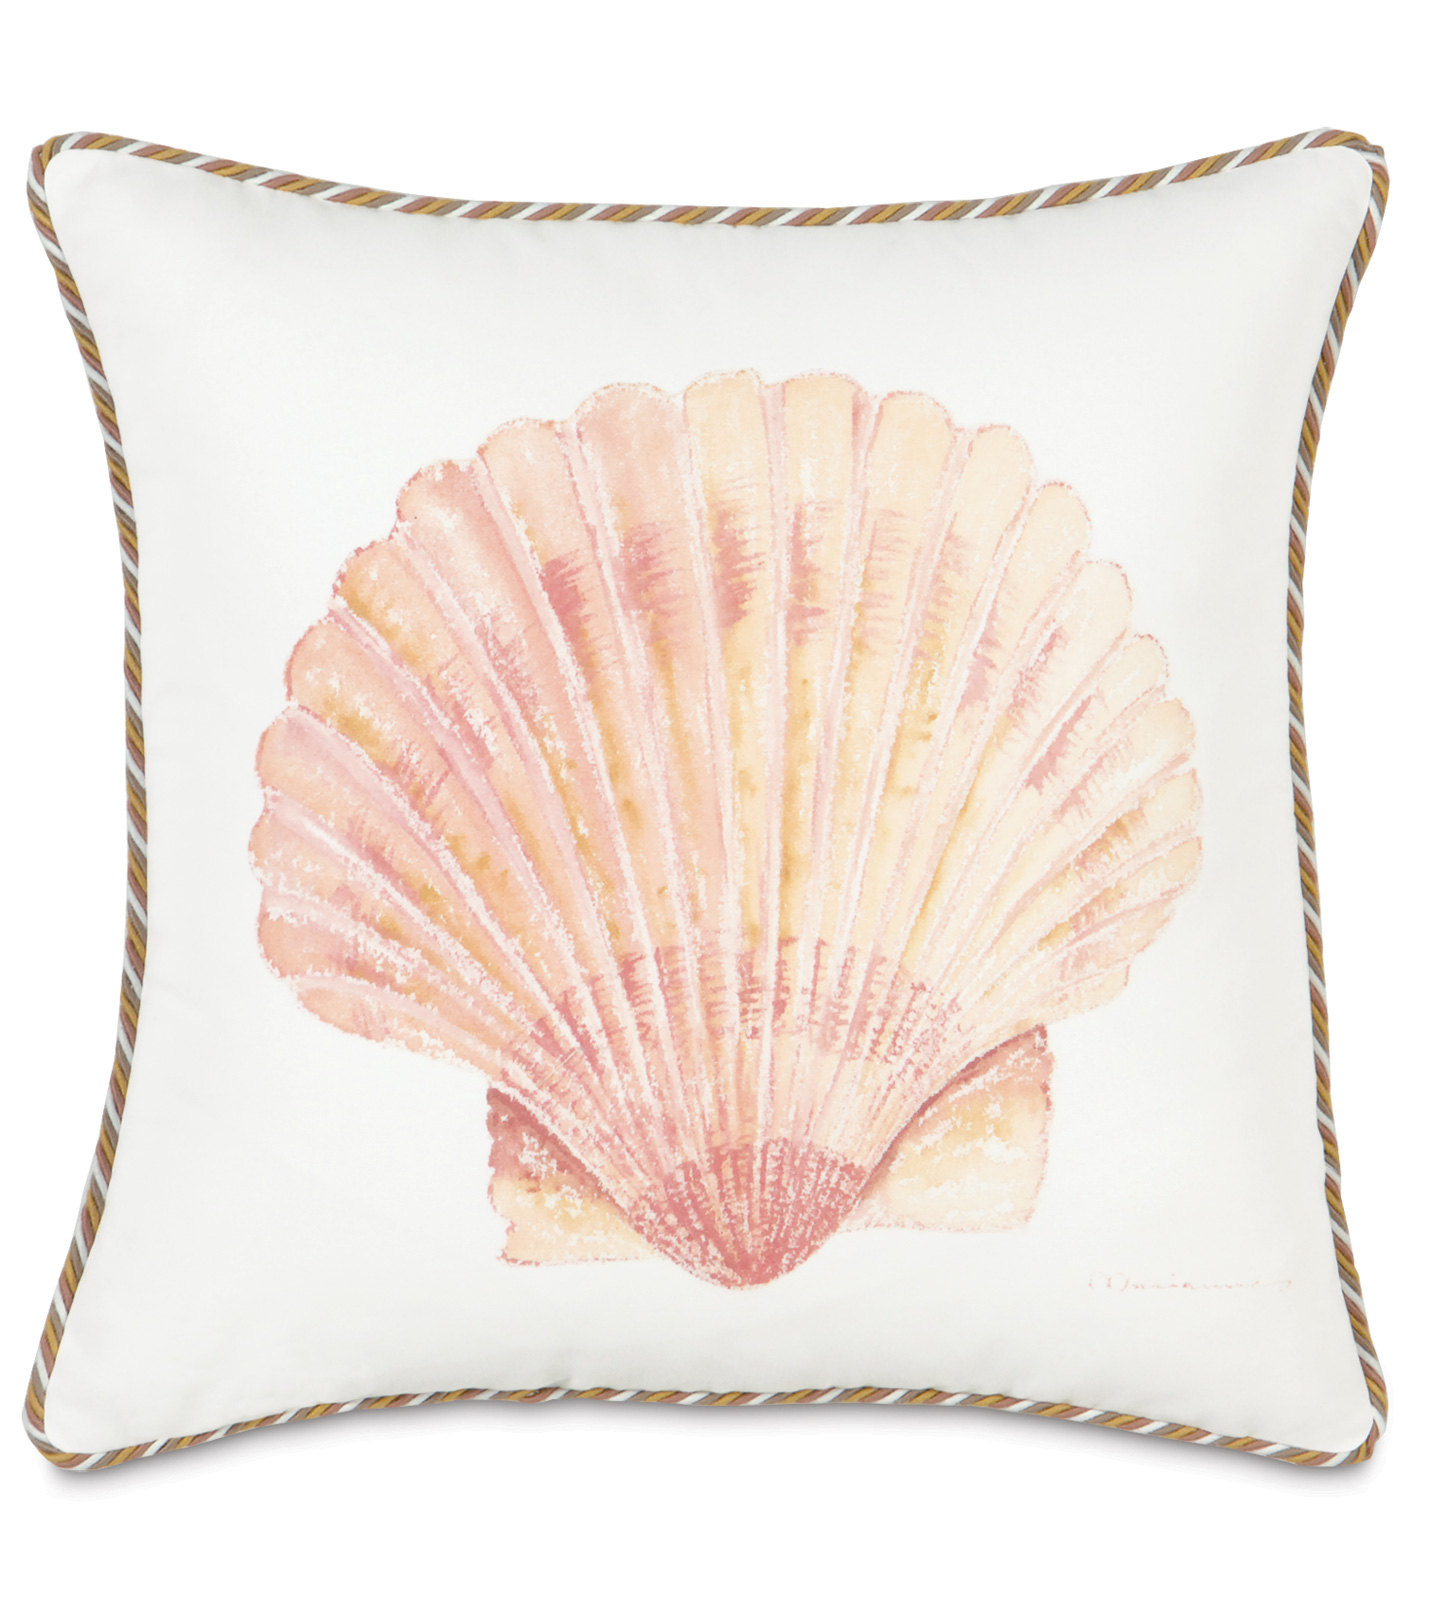 Luxury Bedding by Eastern Accents - HAND-PAINTED SCALLOP SHELL